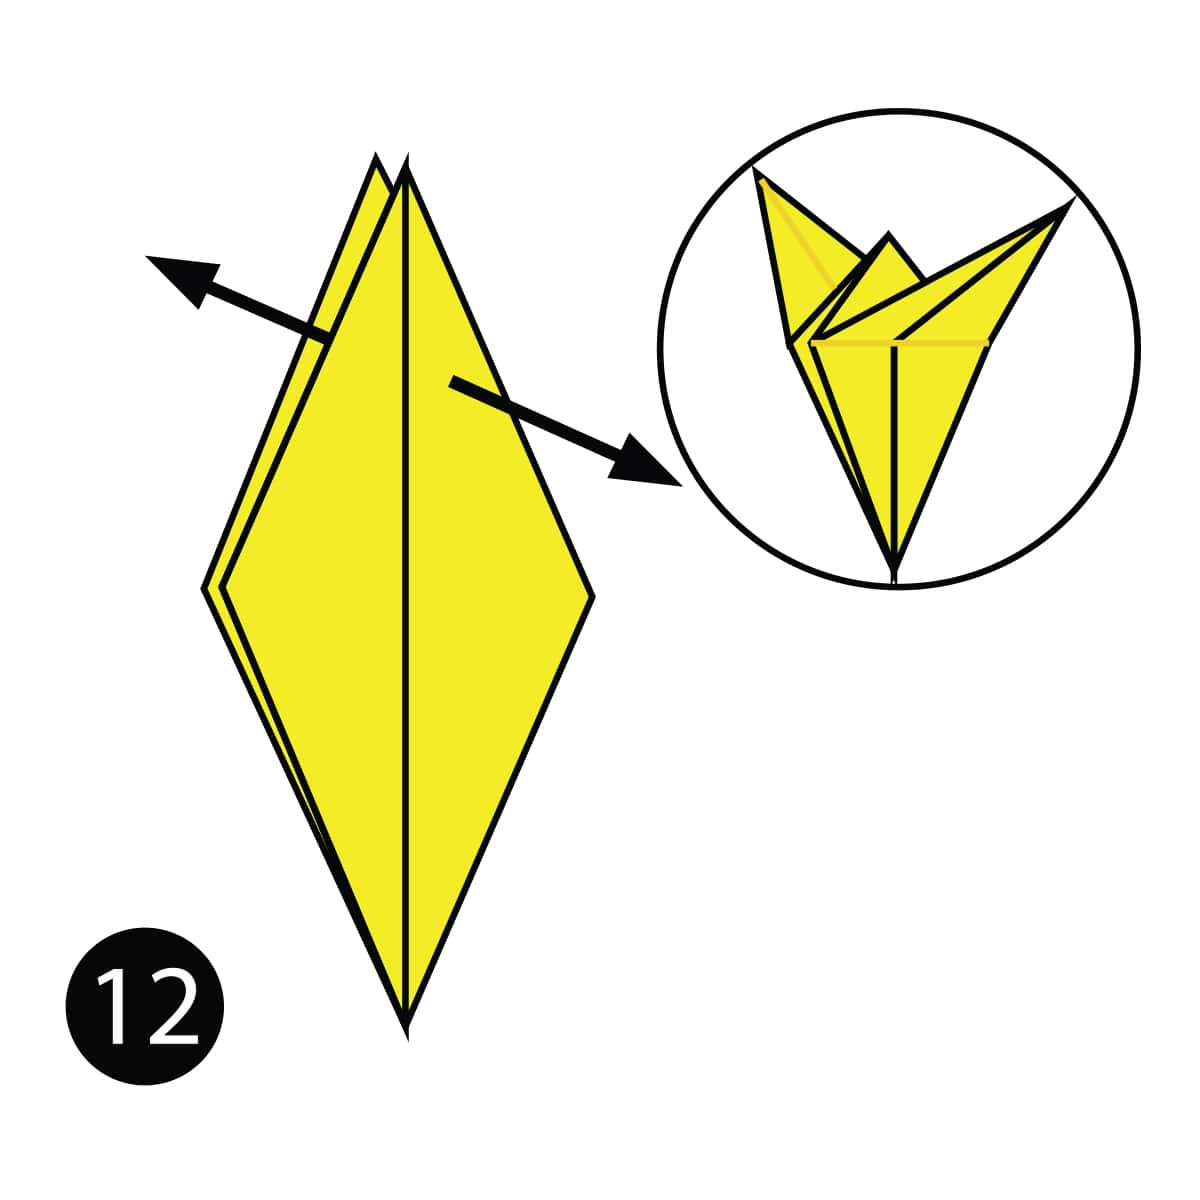 How To Fold A Simple Origami Giraffe Diagram Step 12